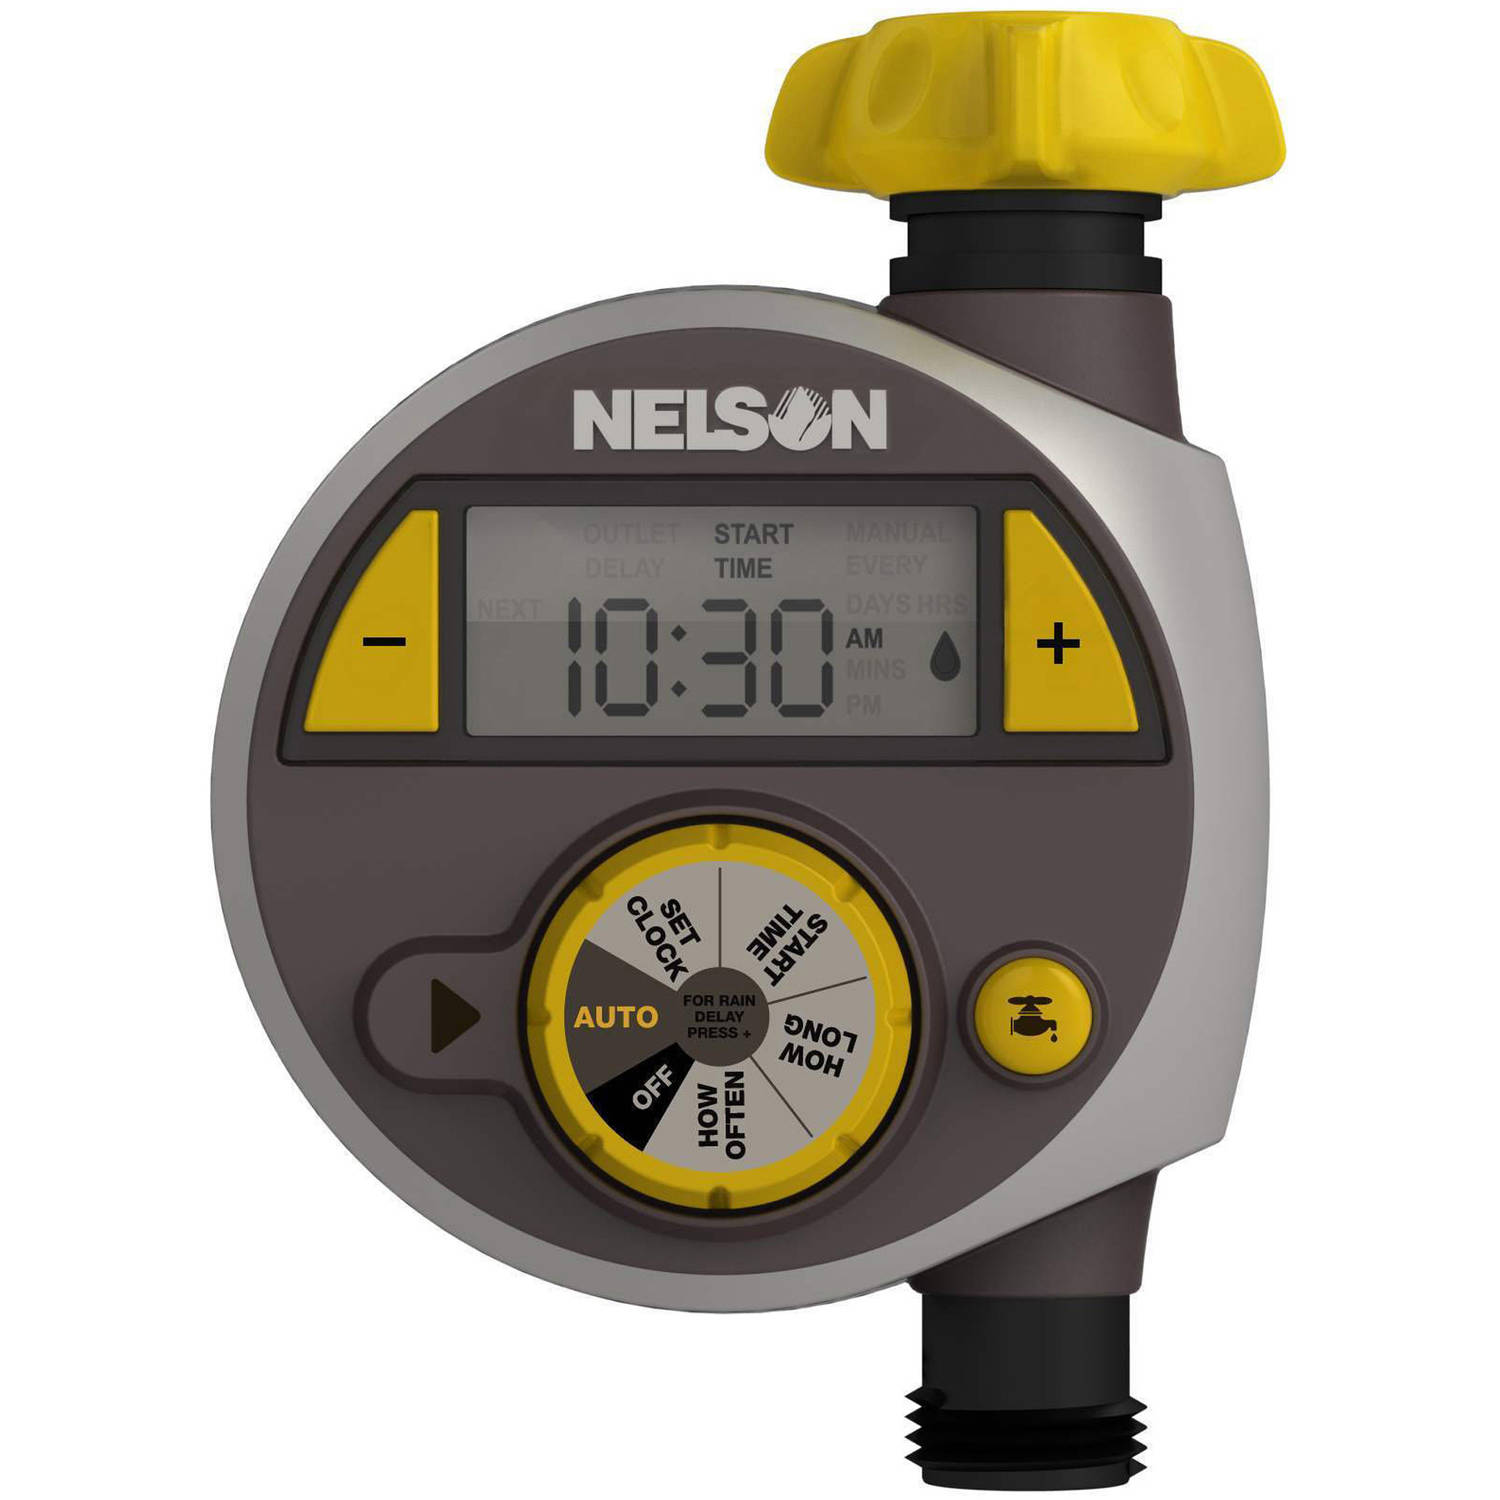 Nelson 56607 Large Timer with LCD Screen Walmartcom